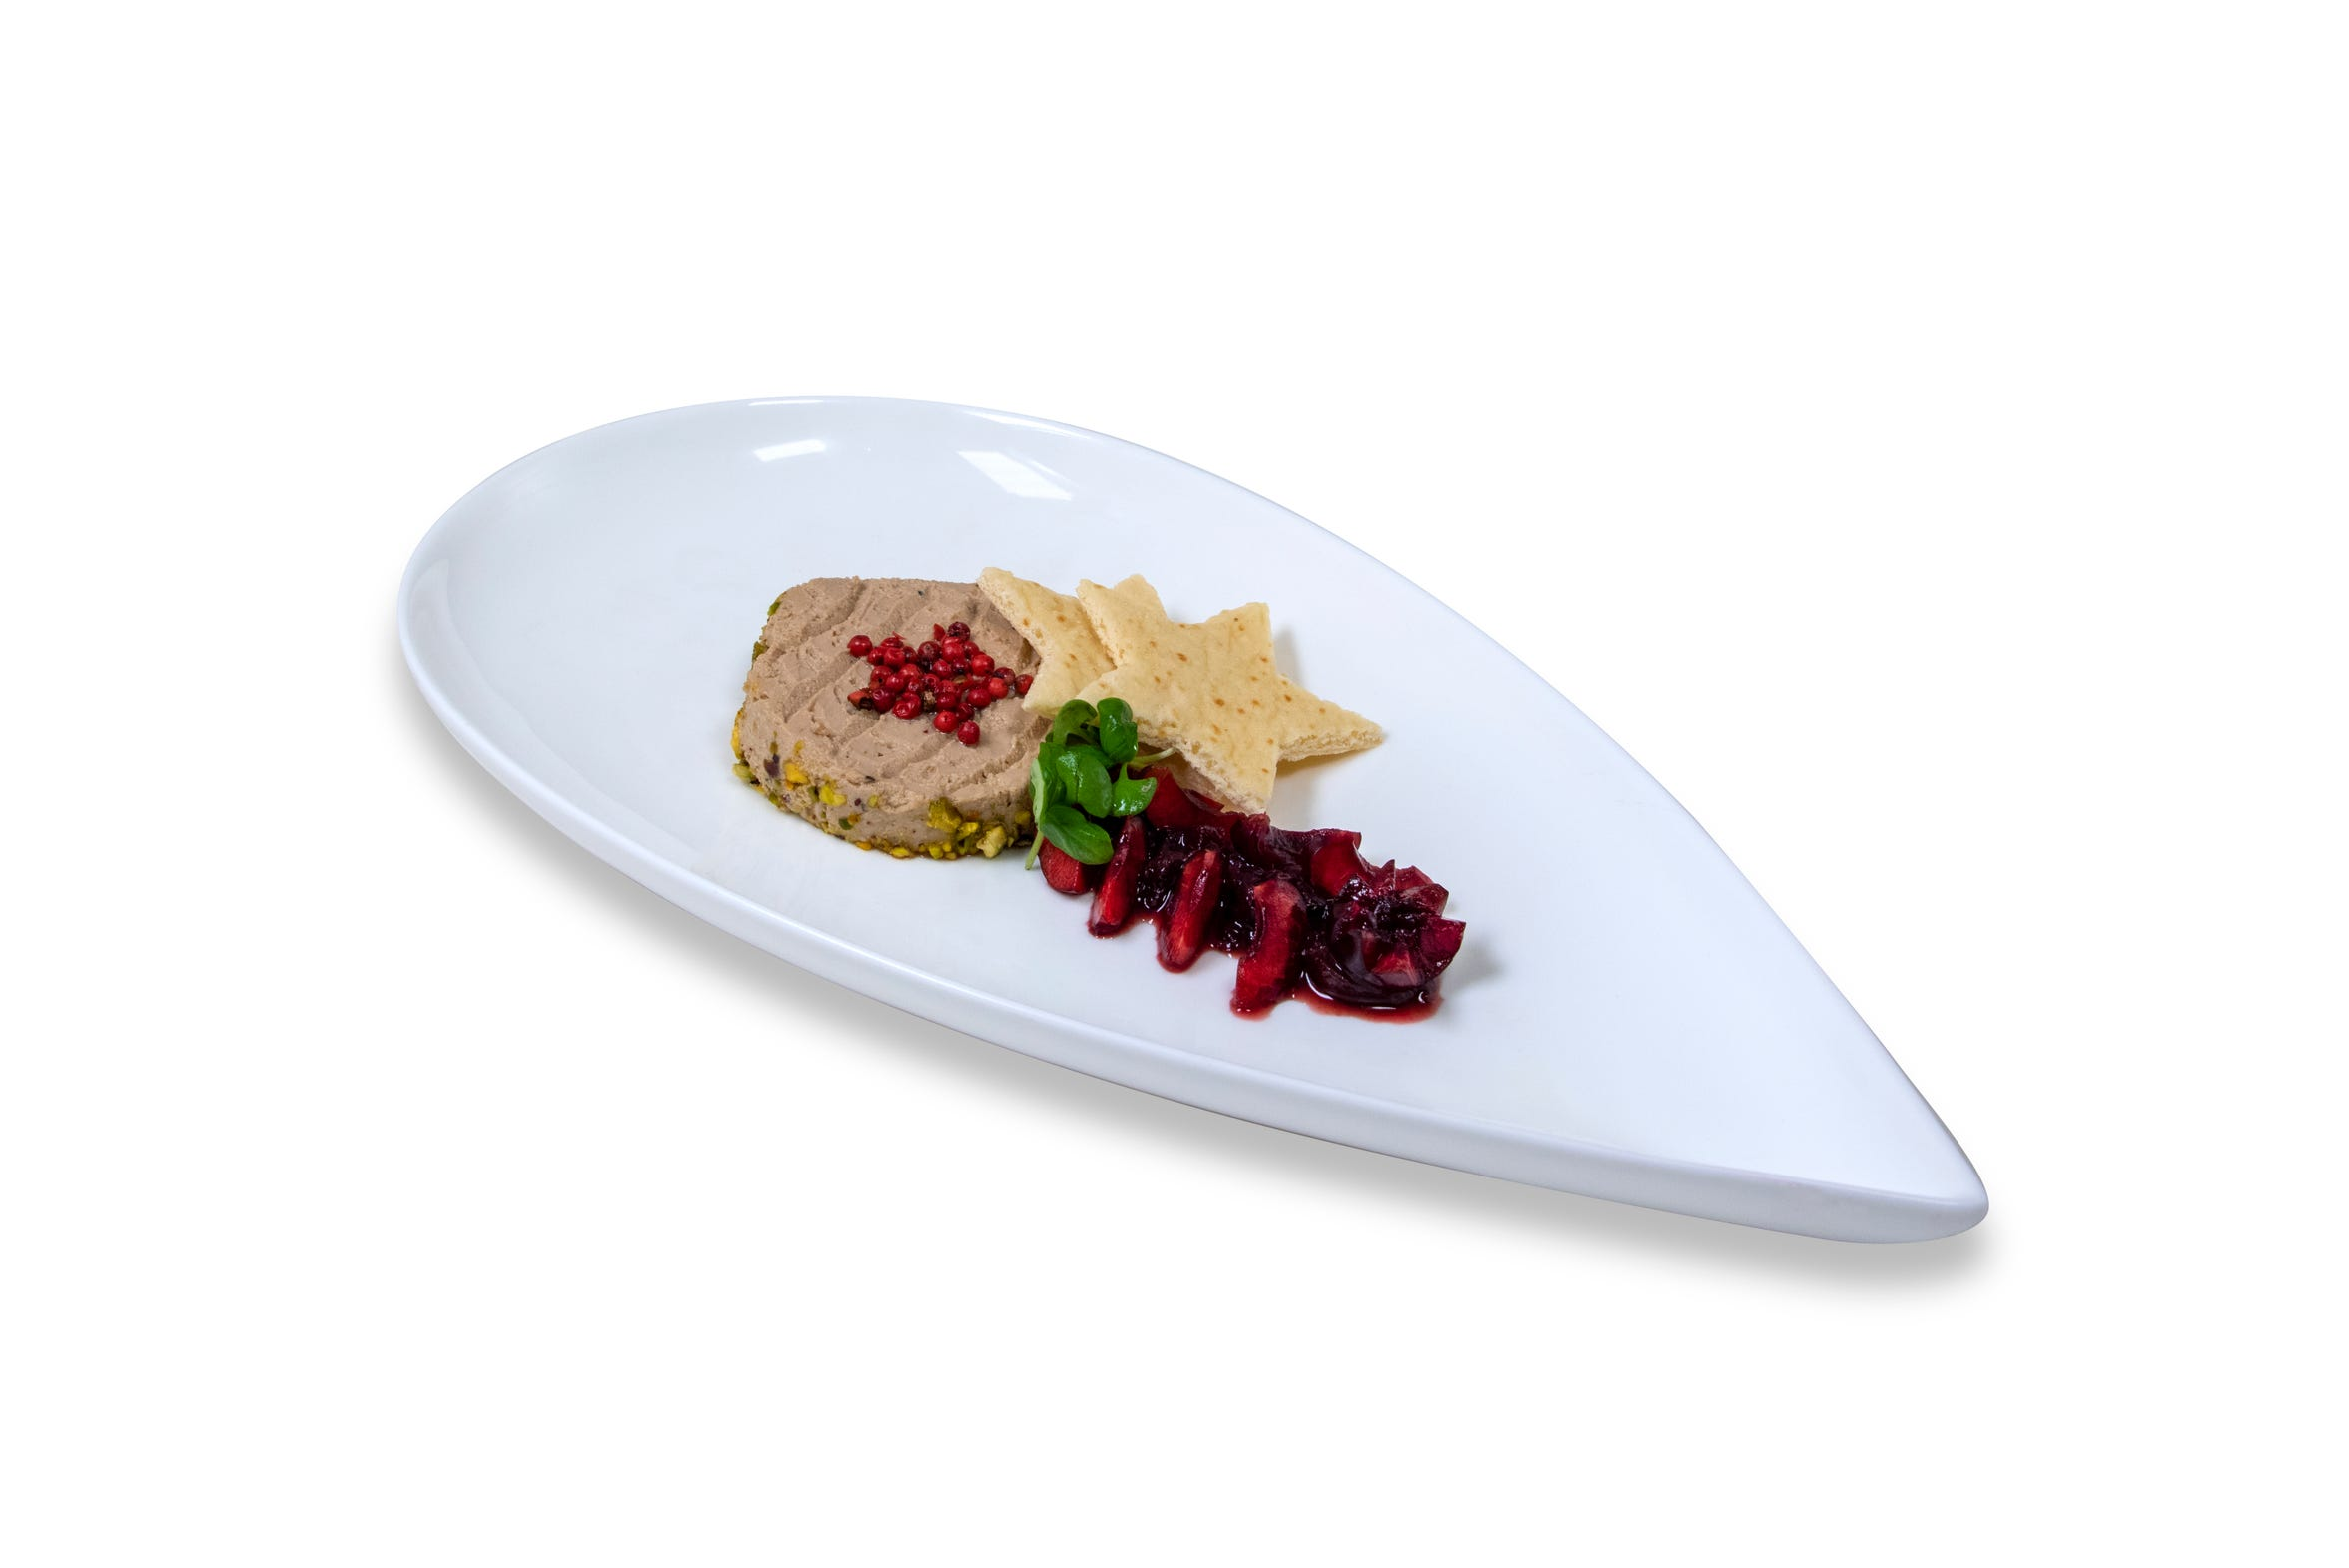 Torchon of foie gras is being served at the Sept. 25, 2018, wine dinner being hosted at the Atlantis Steakhouse by Johnathan L. Wright, Reno Gazette Journal food and drink editor.